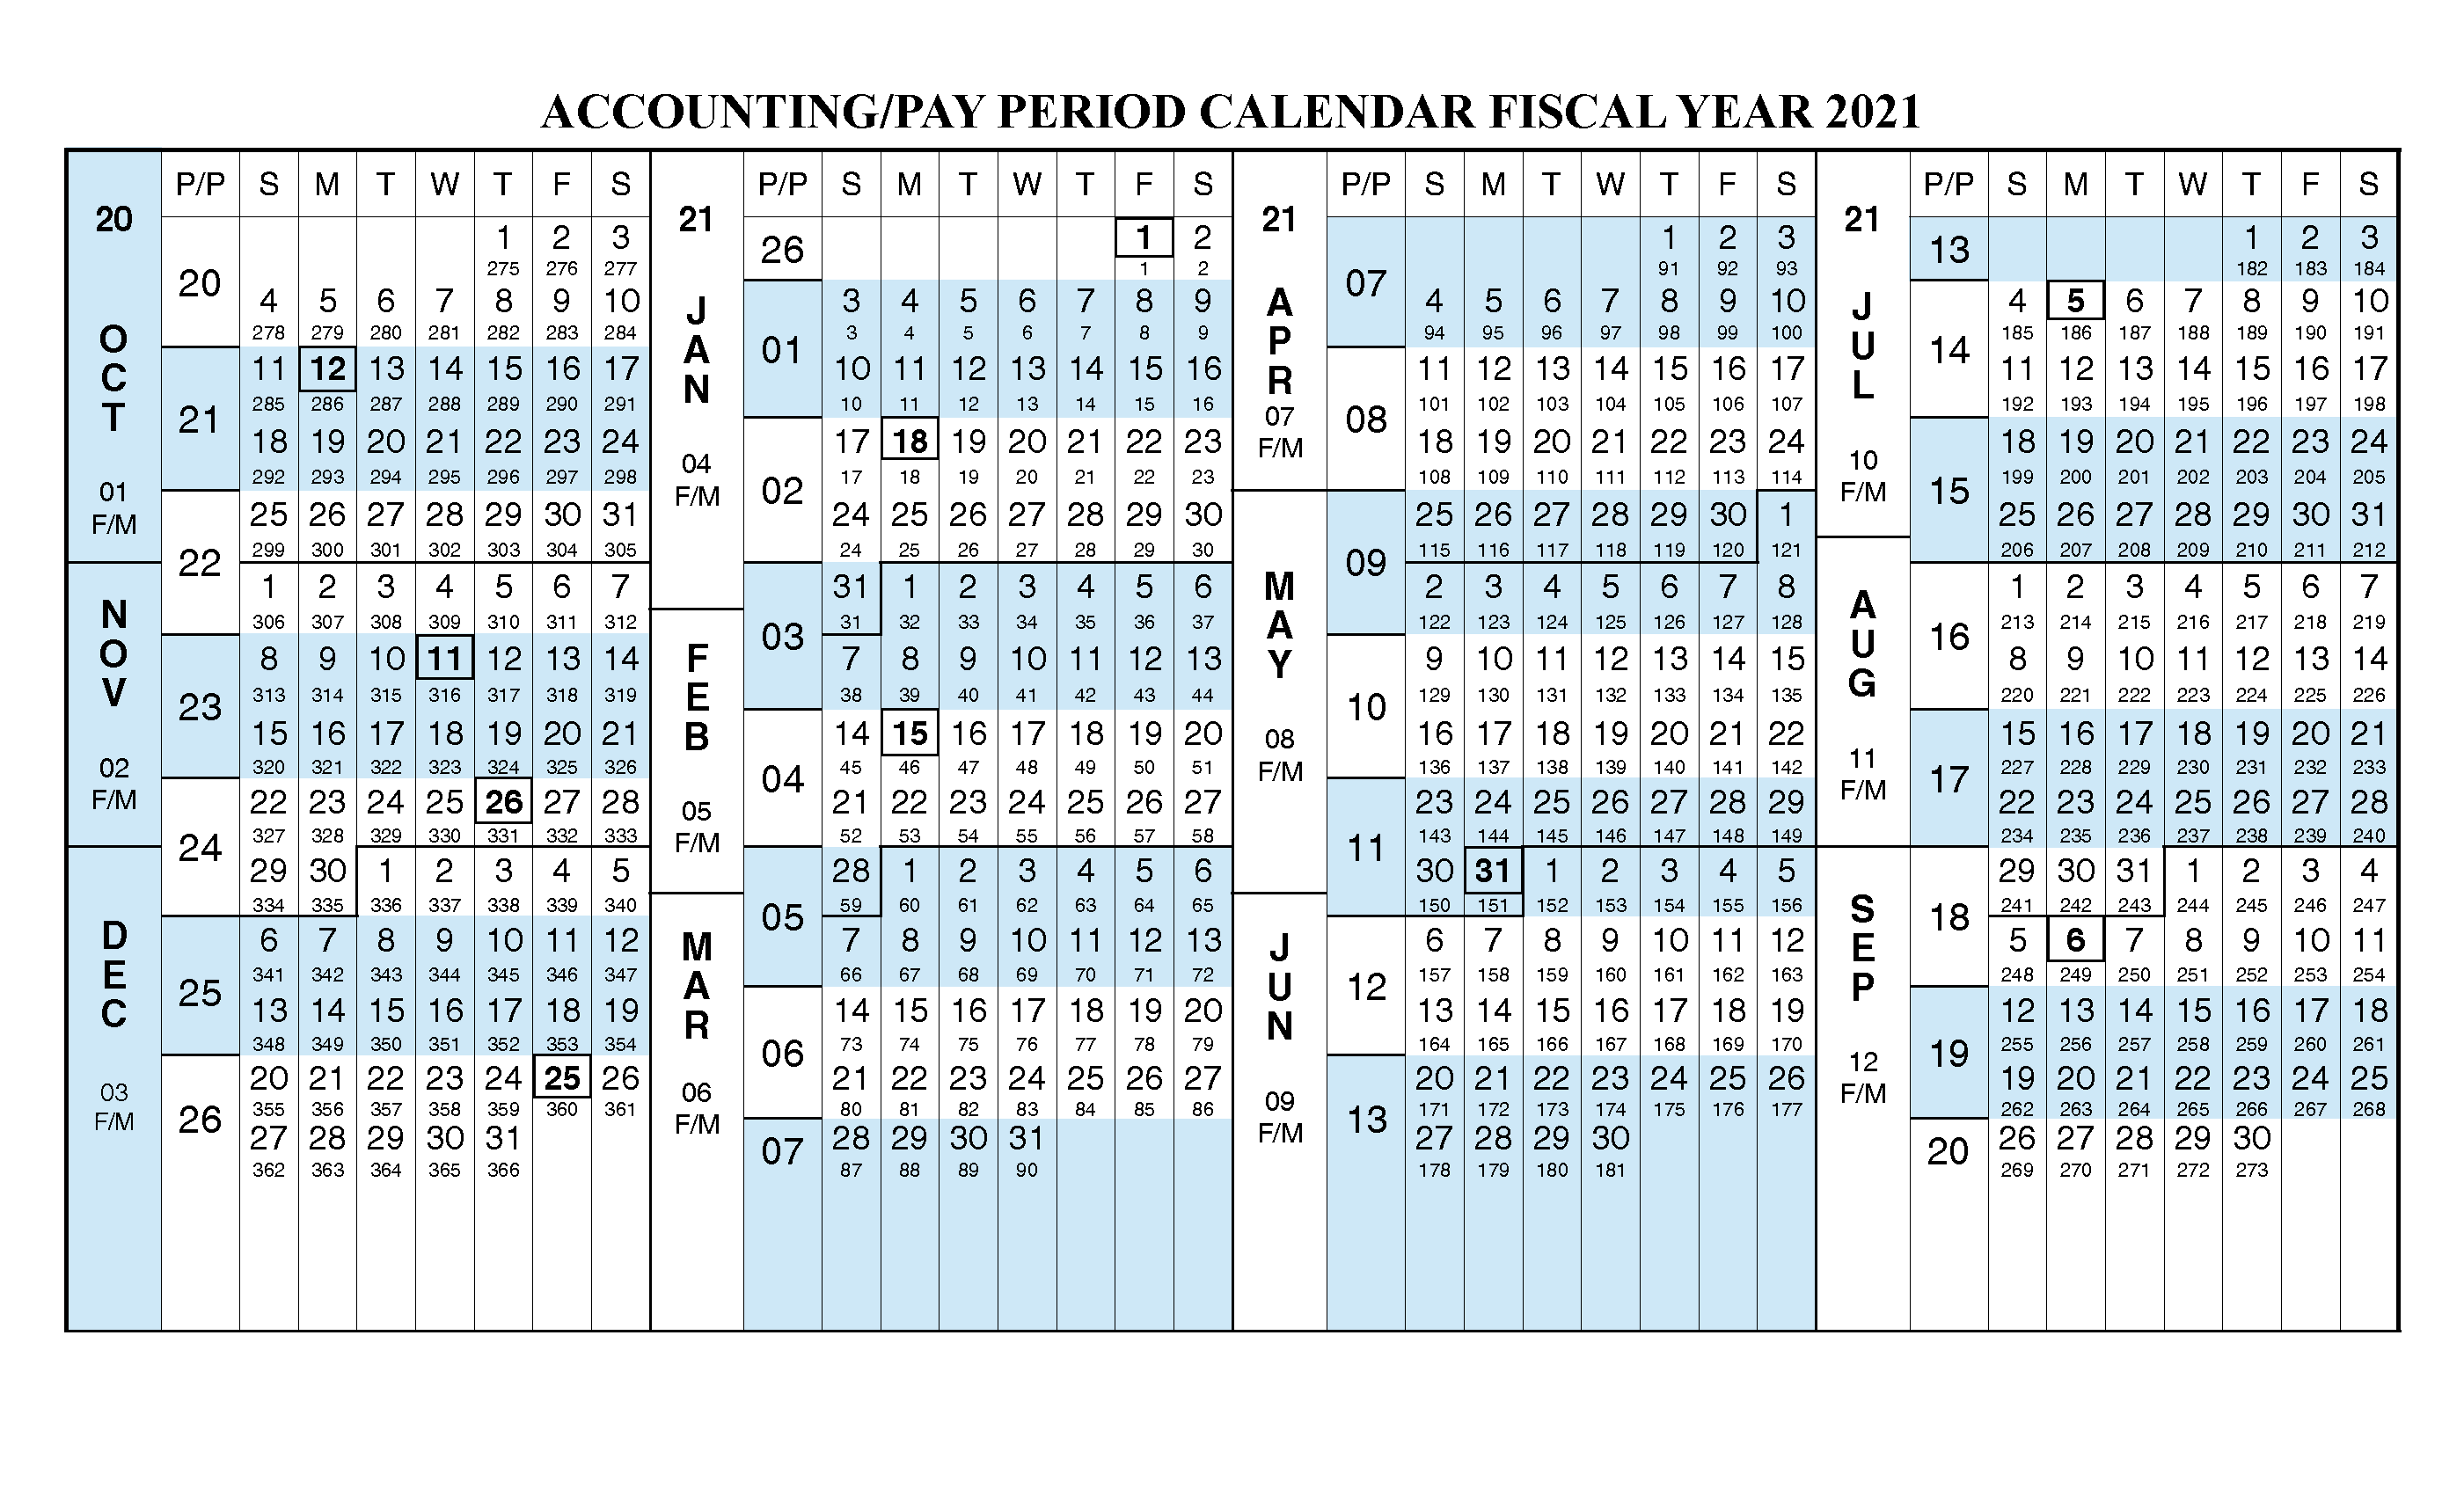 Payroll Calendar 2021 Fiscal Year Calendar Oct 2020 Sep 2021